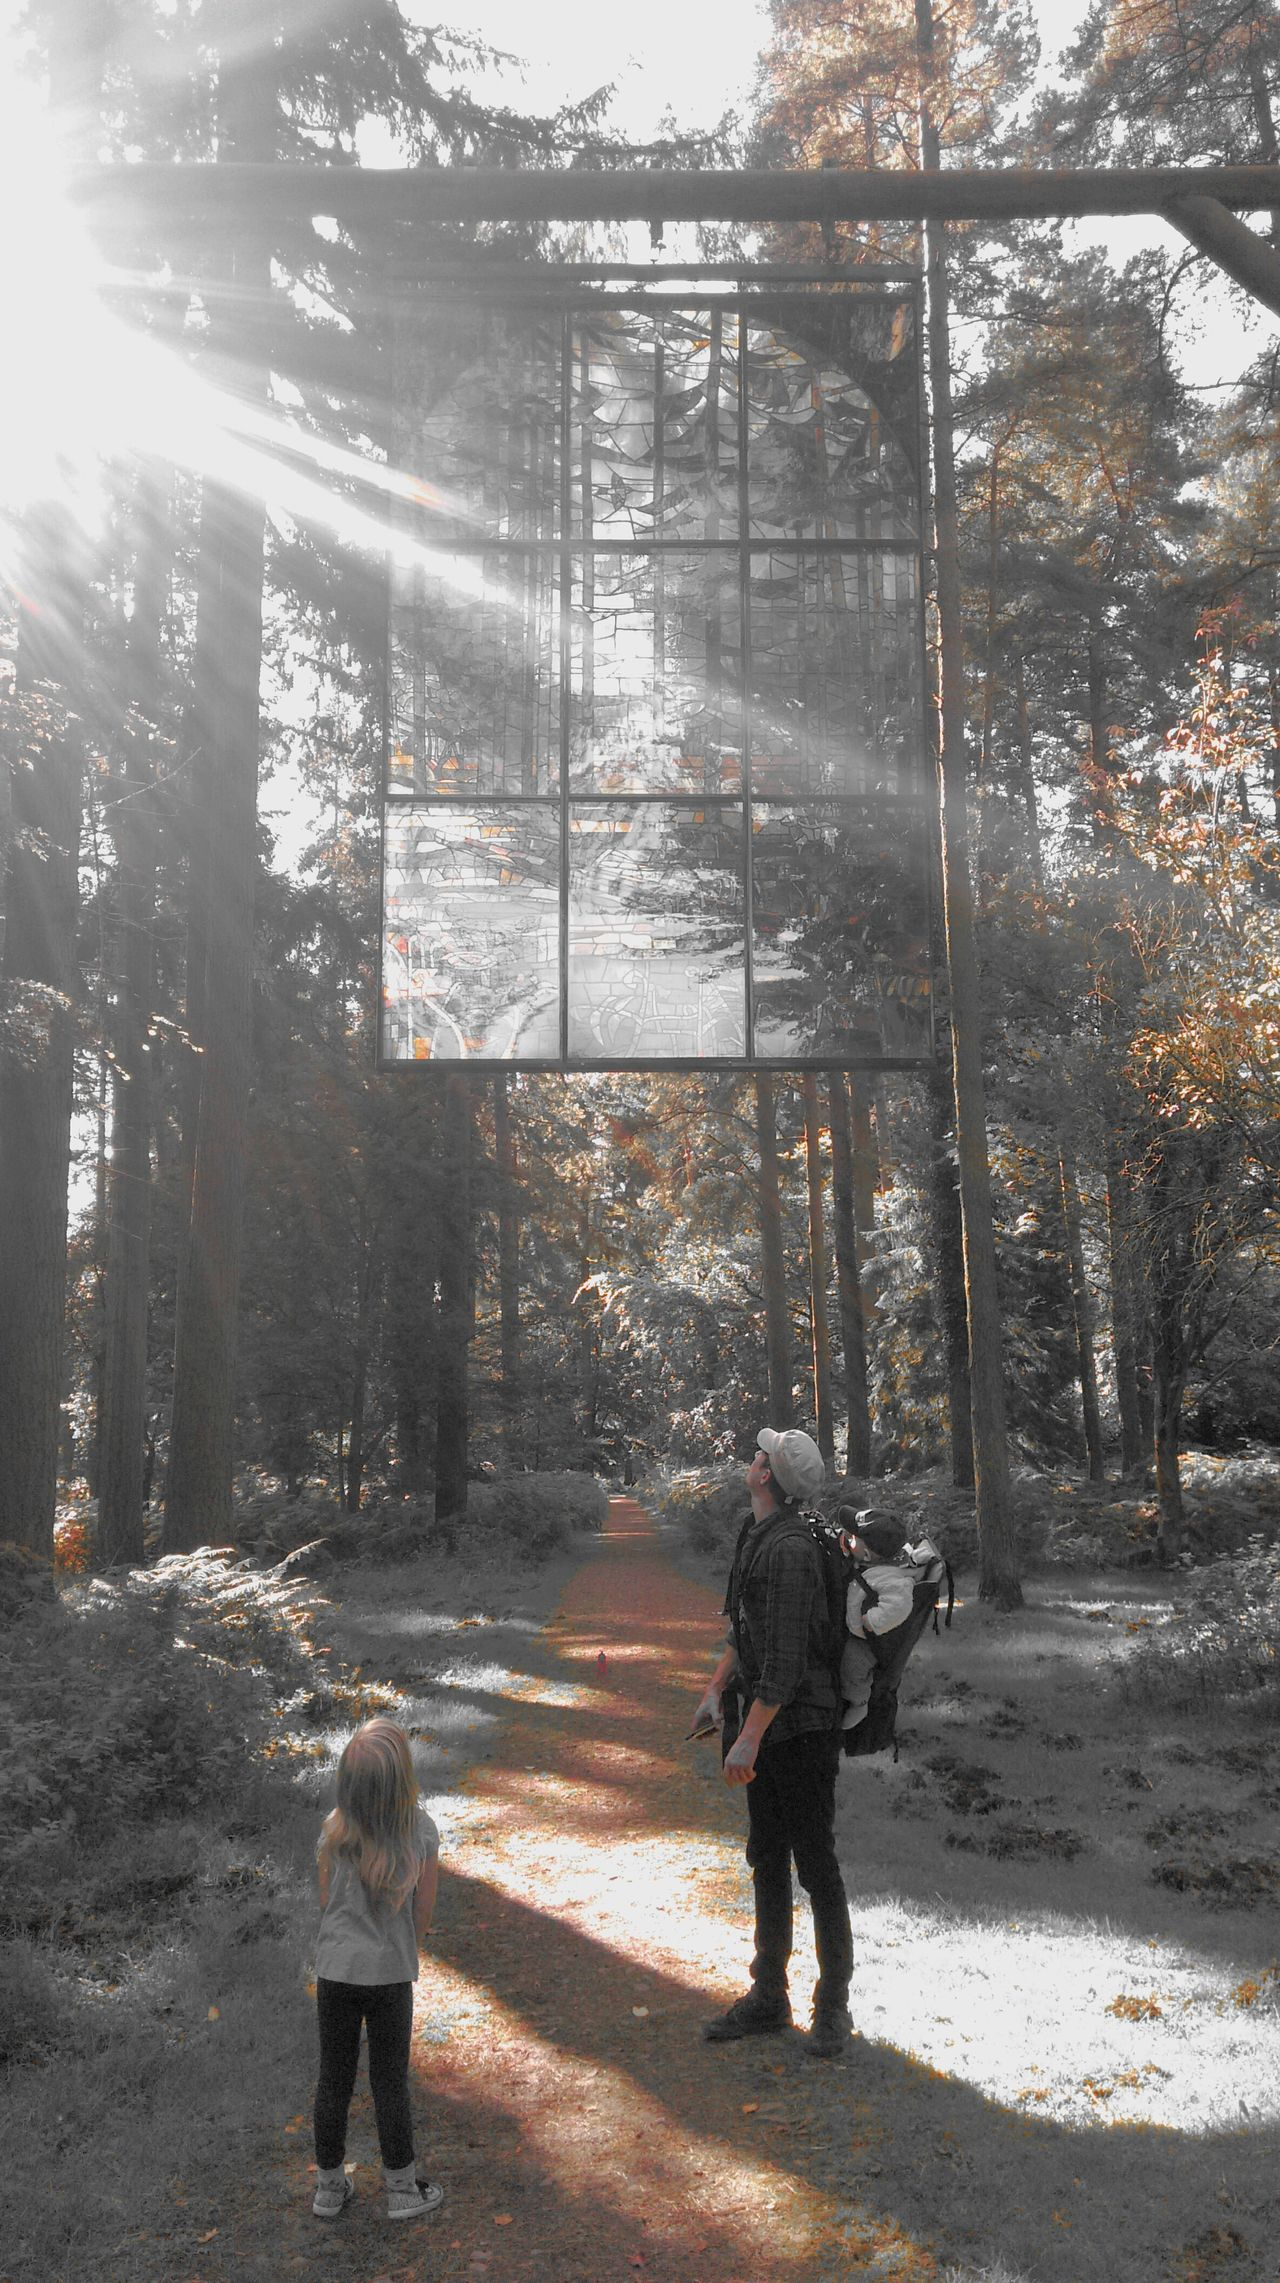 People Full Length Day Outdoors Family Nature Forest WoodLand Sunlight Beauty In Nature Stained Glass Stained Glass Window BYOPaper!